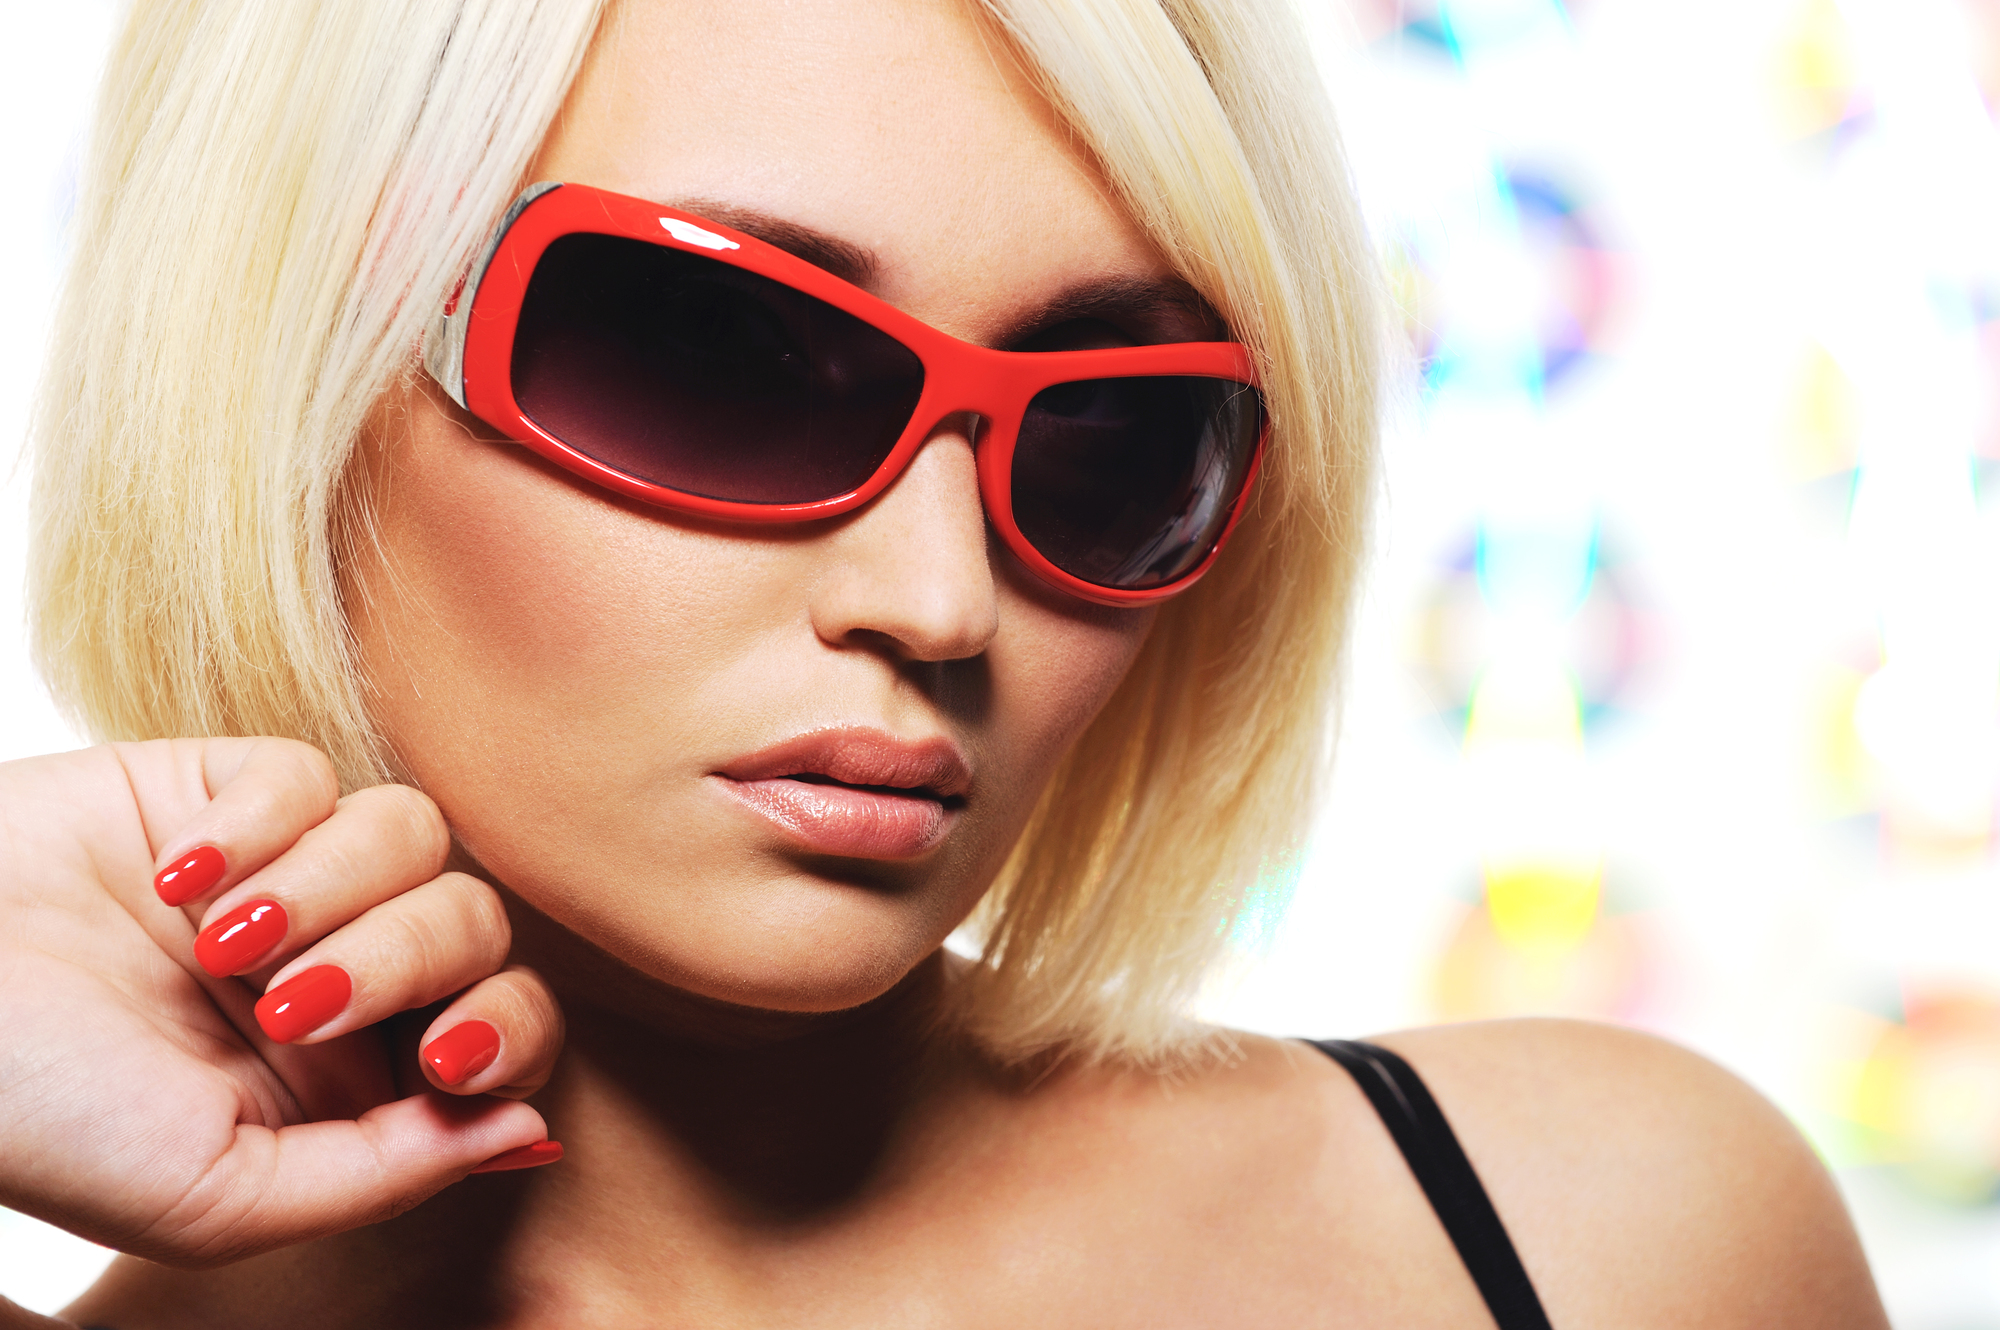 glamour view of beautiful woman with red sunglasses - close-up portrait